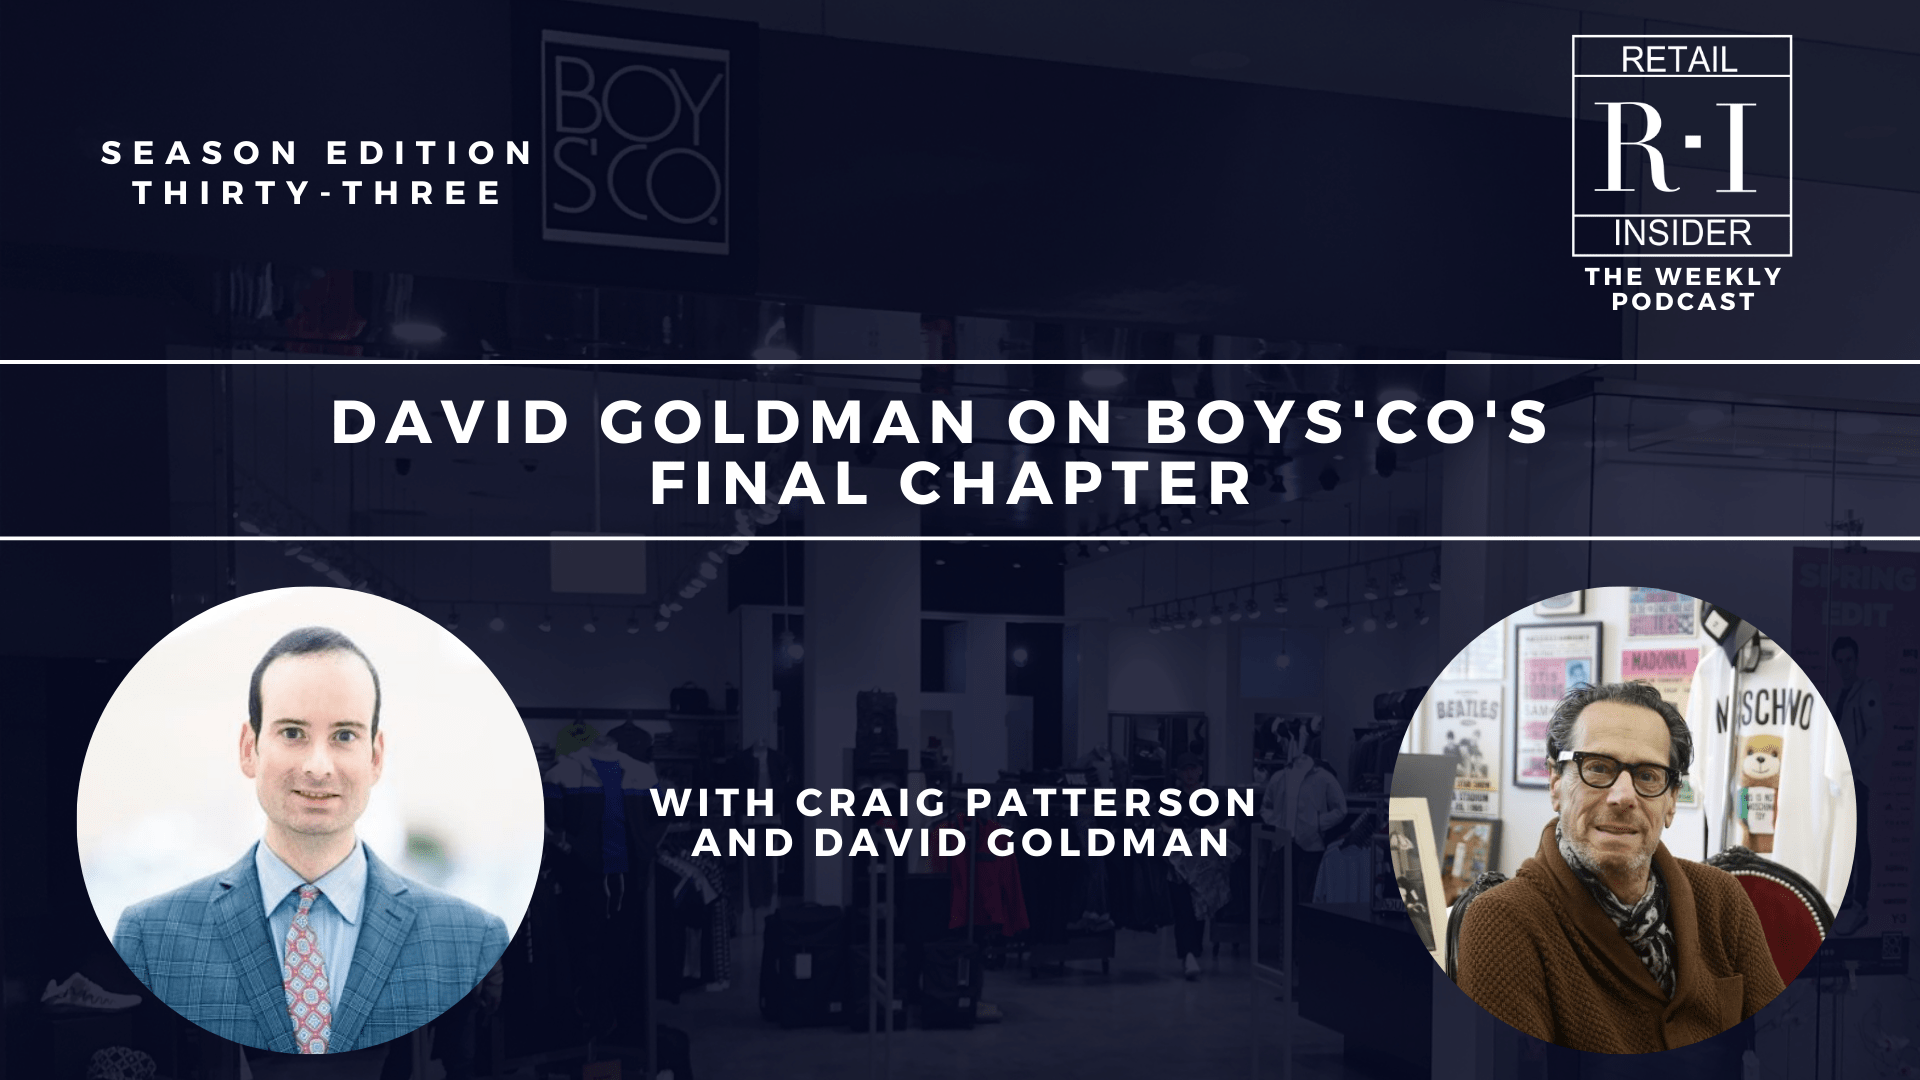 Special Edition 34: David Goldman on Boys'Co's Final Chapter